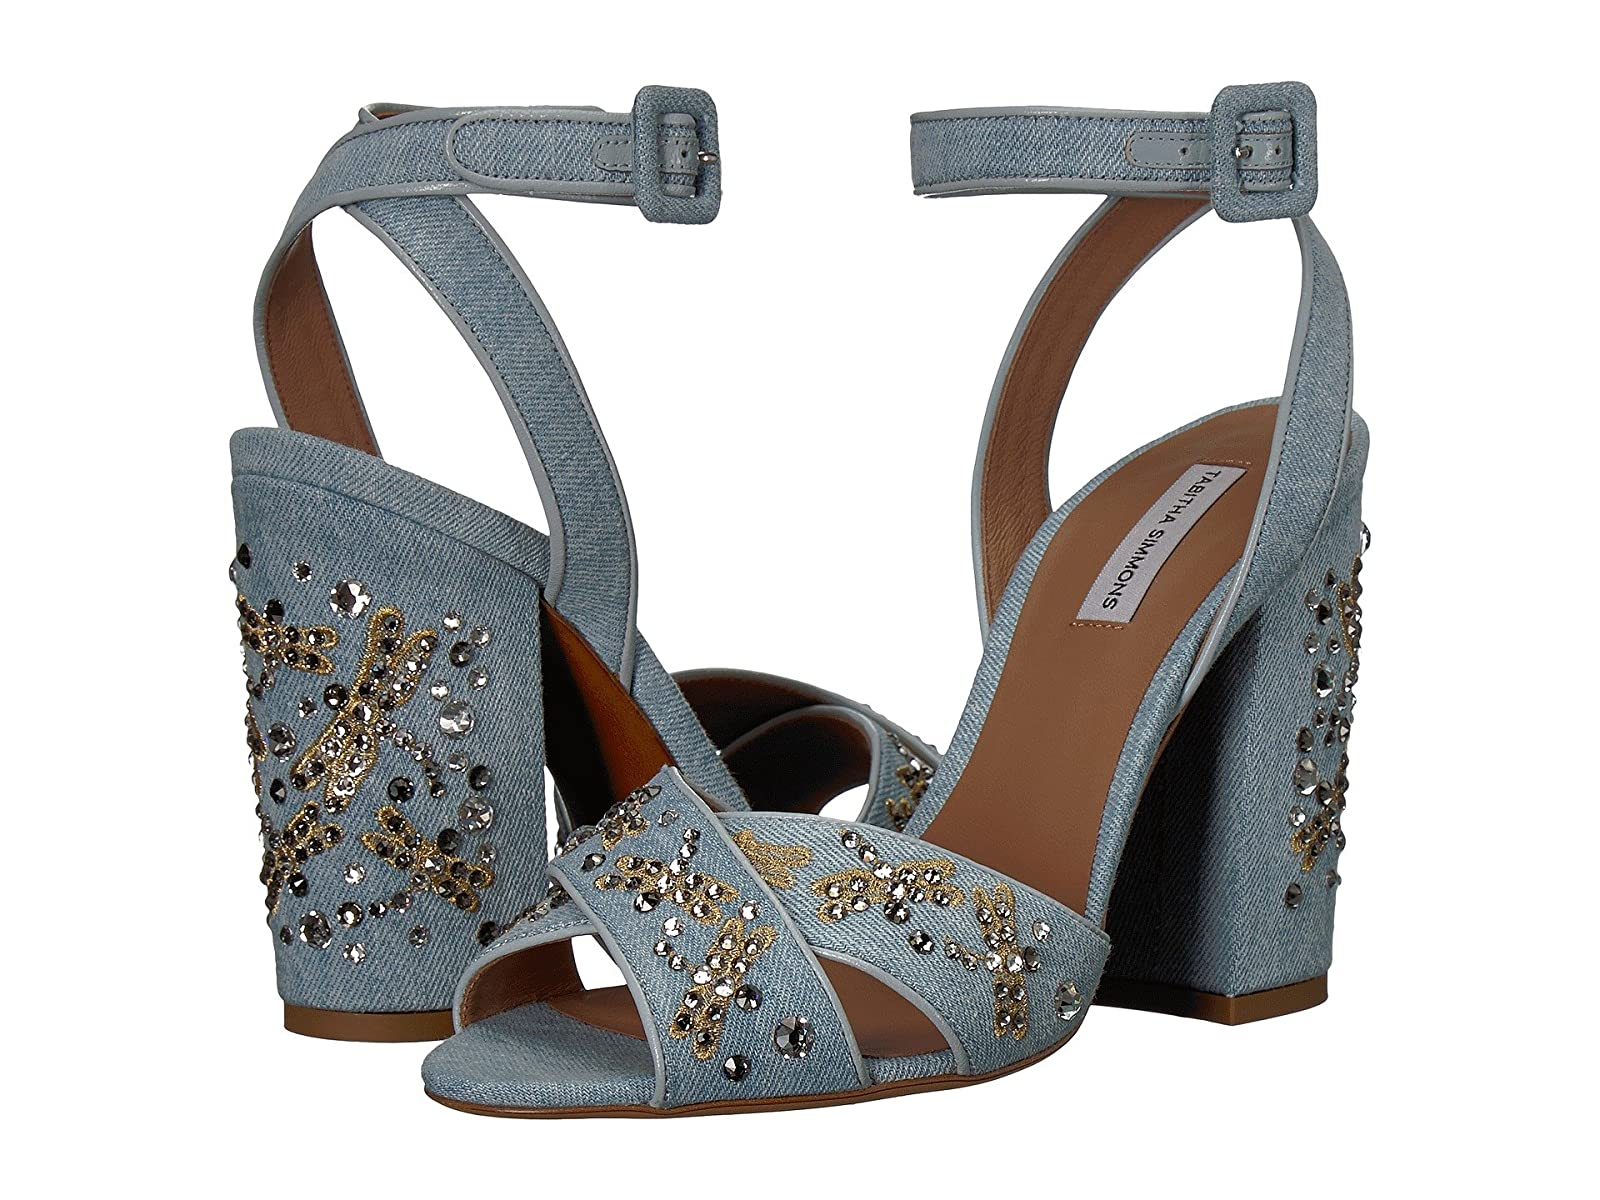 Tabitha Simmons Connie Fly SparkCheap and distinctive eye-catching shoes